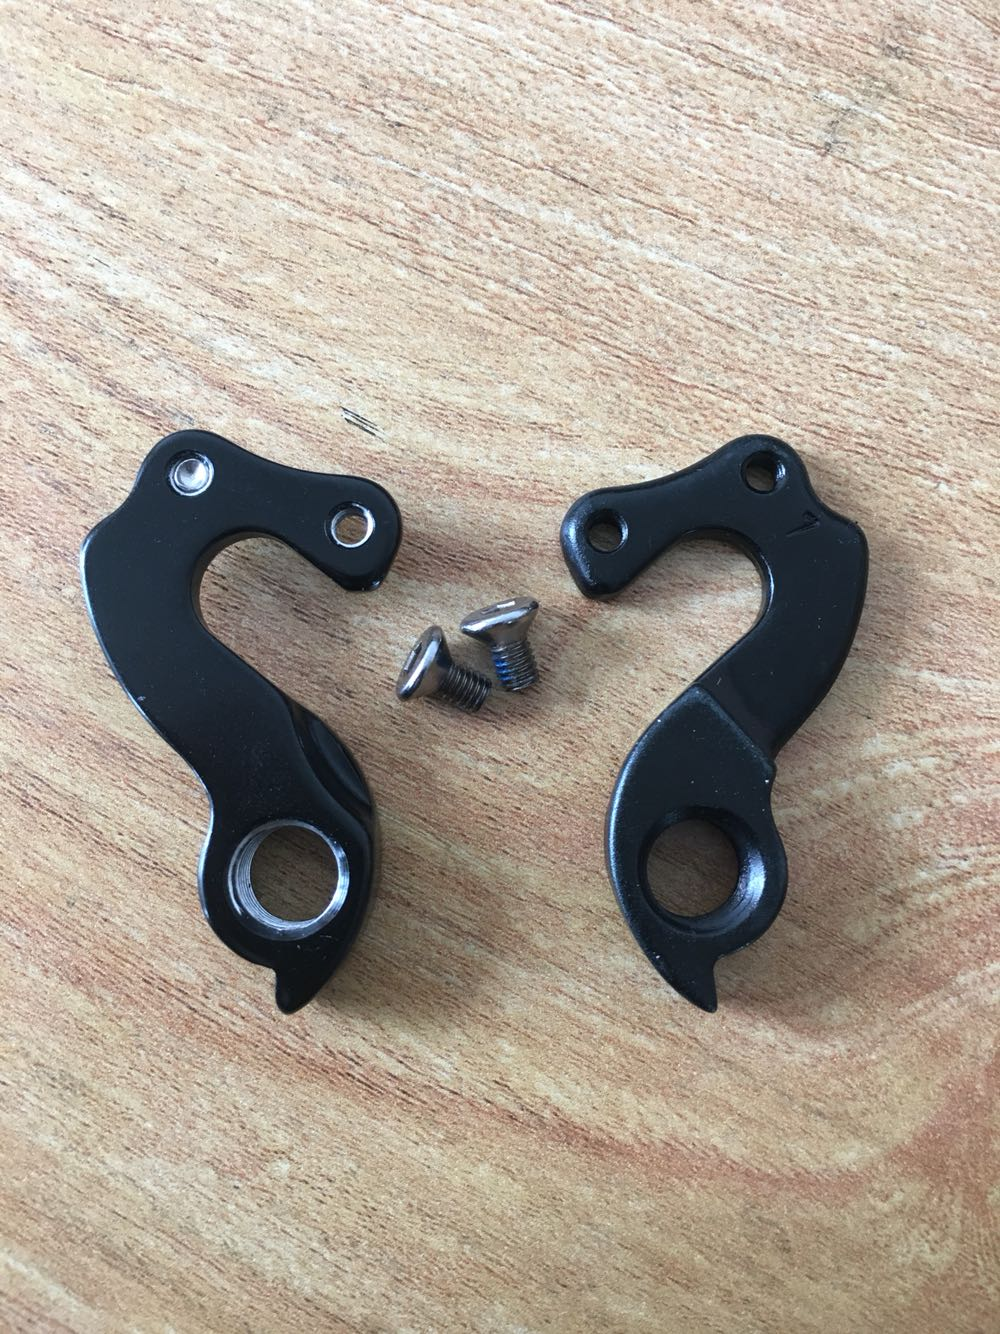 WholeSale 10pcs lot Alloy Mountain Bike Gear Mech Rear Derailleur Hanger Dropout W Screws for GT